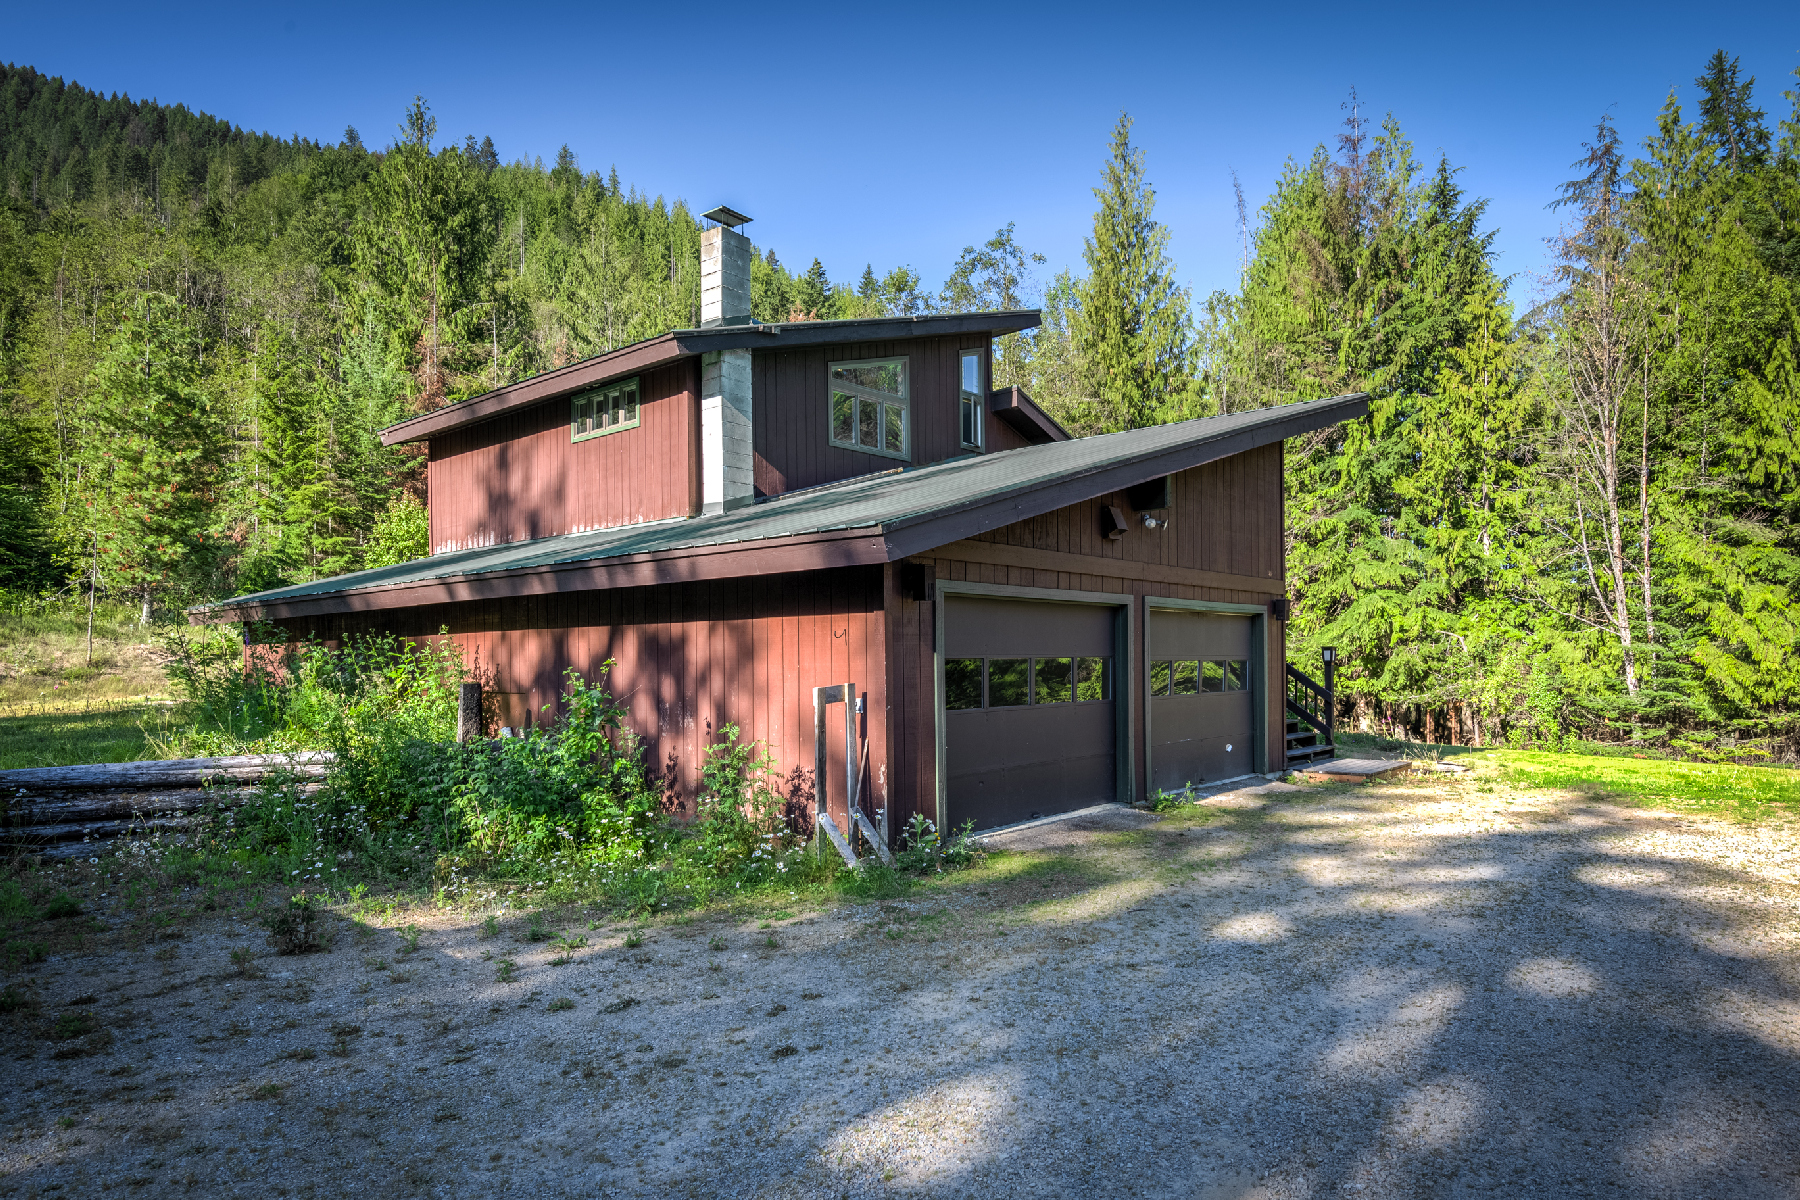 Single Family Home for Active at Dream Acreage with Creek! 1722 Trestle Creek Rd Hope, Idaho 83836 United States